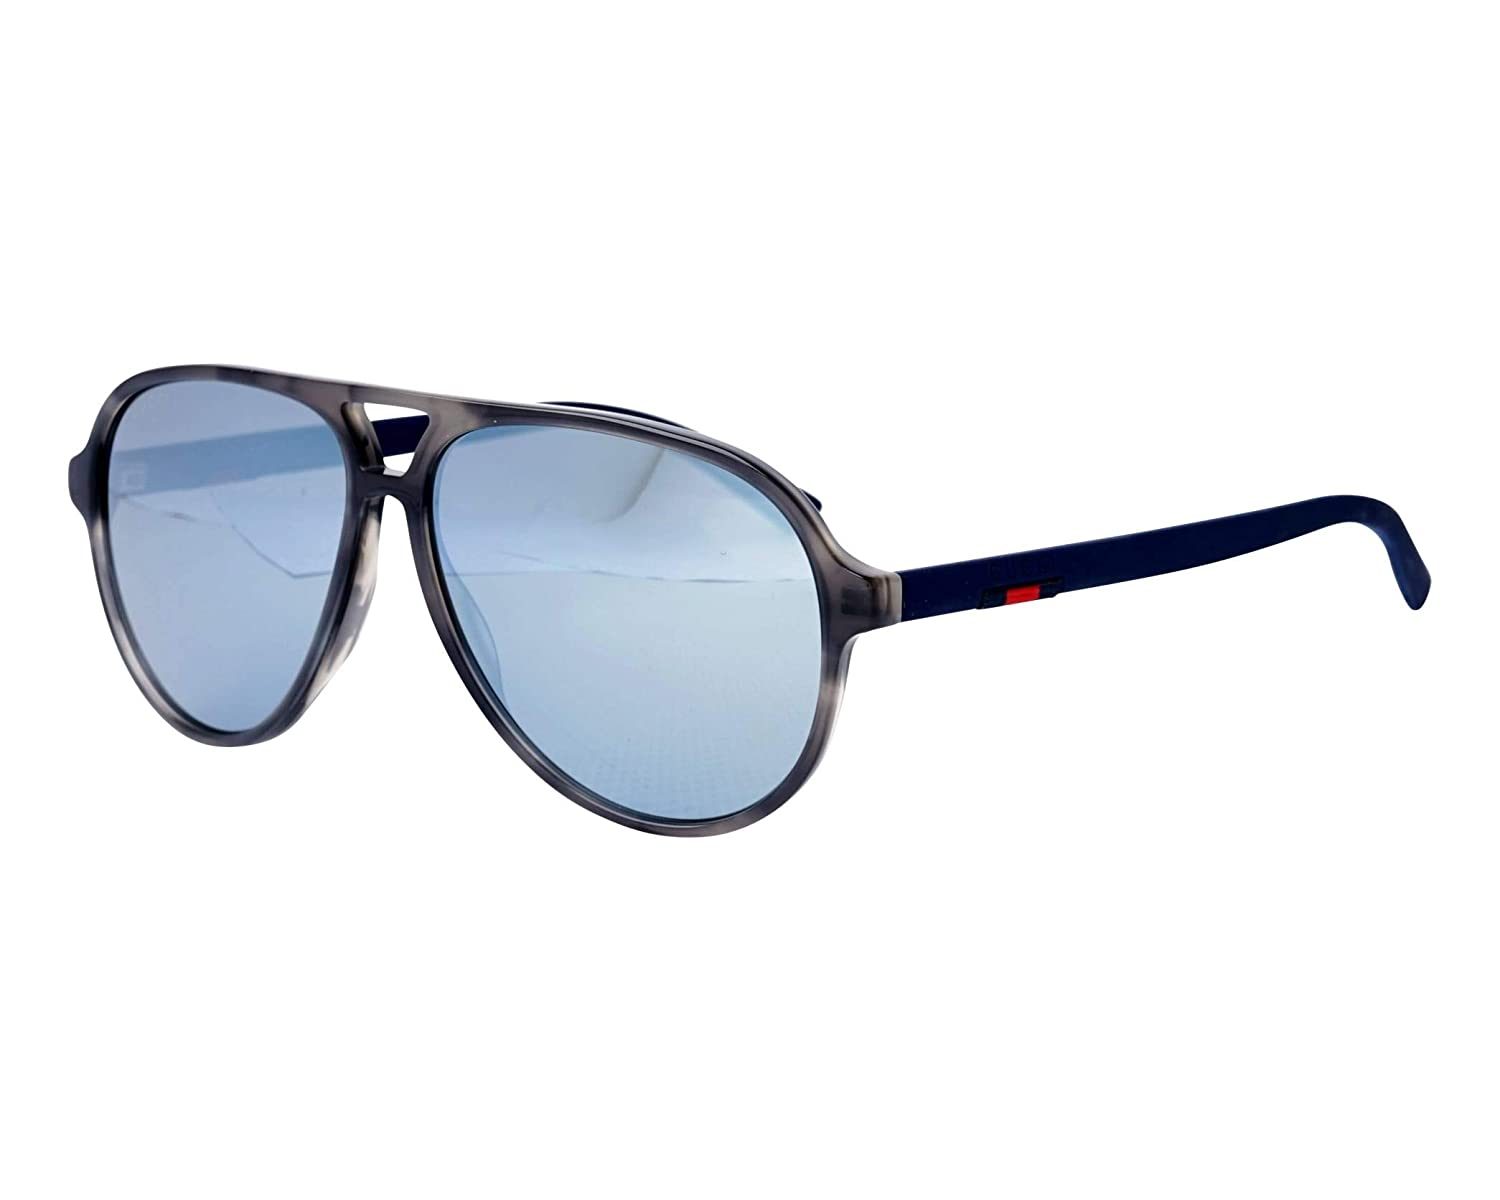 Amazon.com: GG0423S 0423 Grey Havana Blue Mirrored Stripe ...